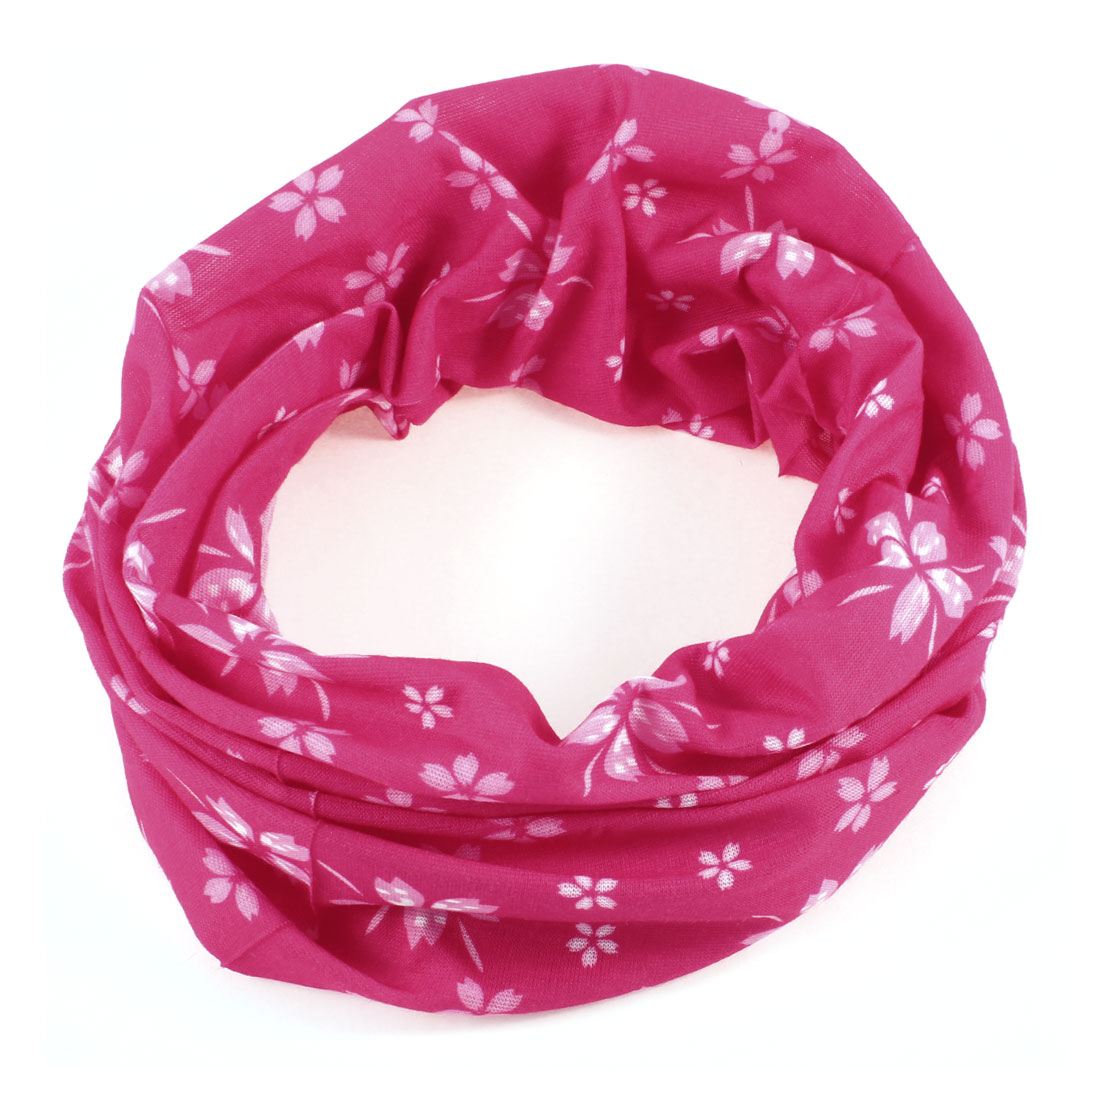 Sports Exercises Protective Sweatband Flower Printed Headband Fuchsia